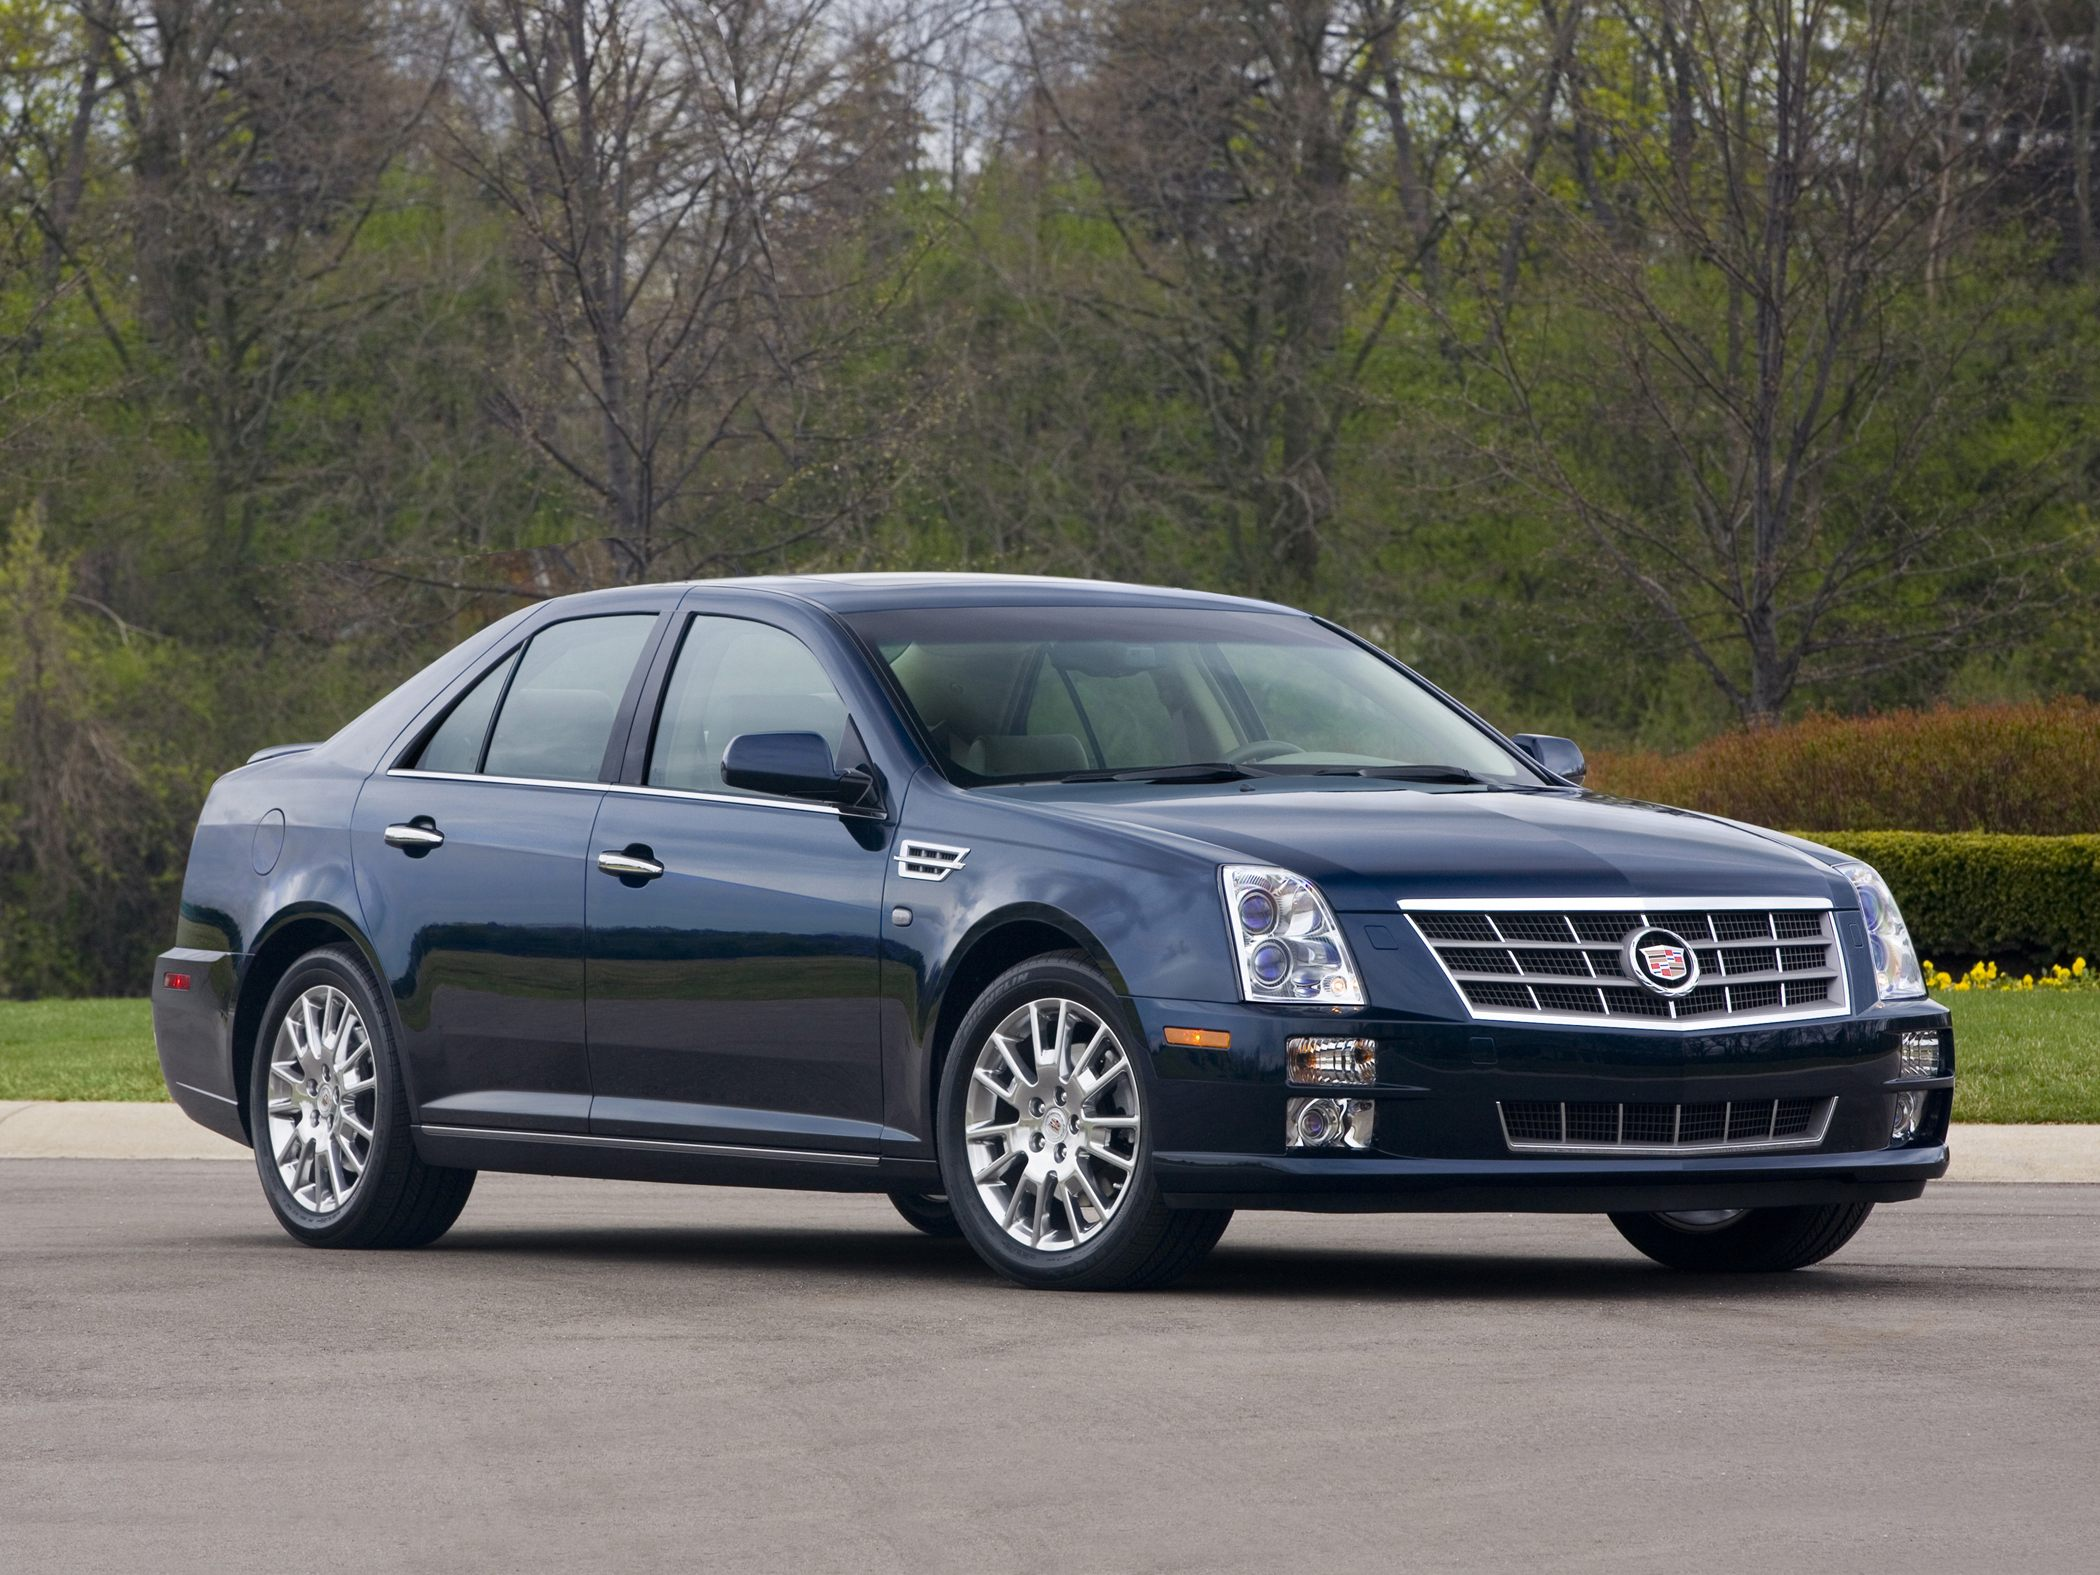 sts cadillac specs auto photo database pictures and com gallery information